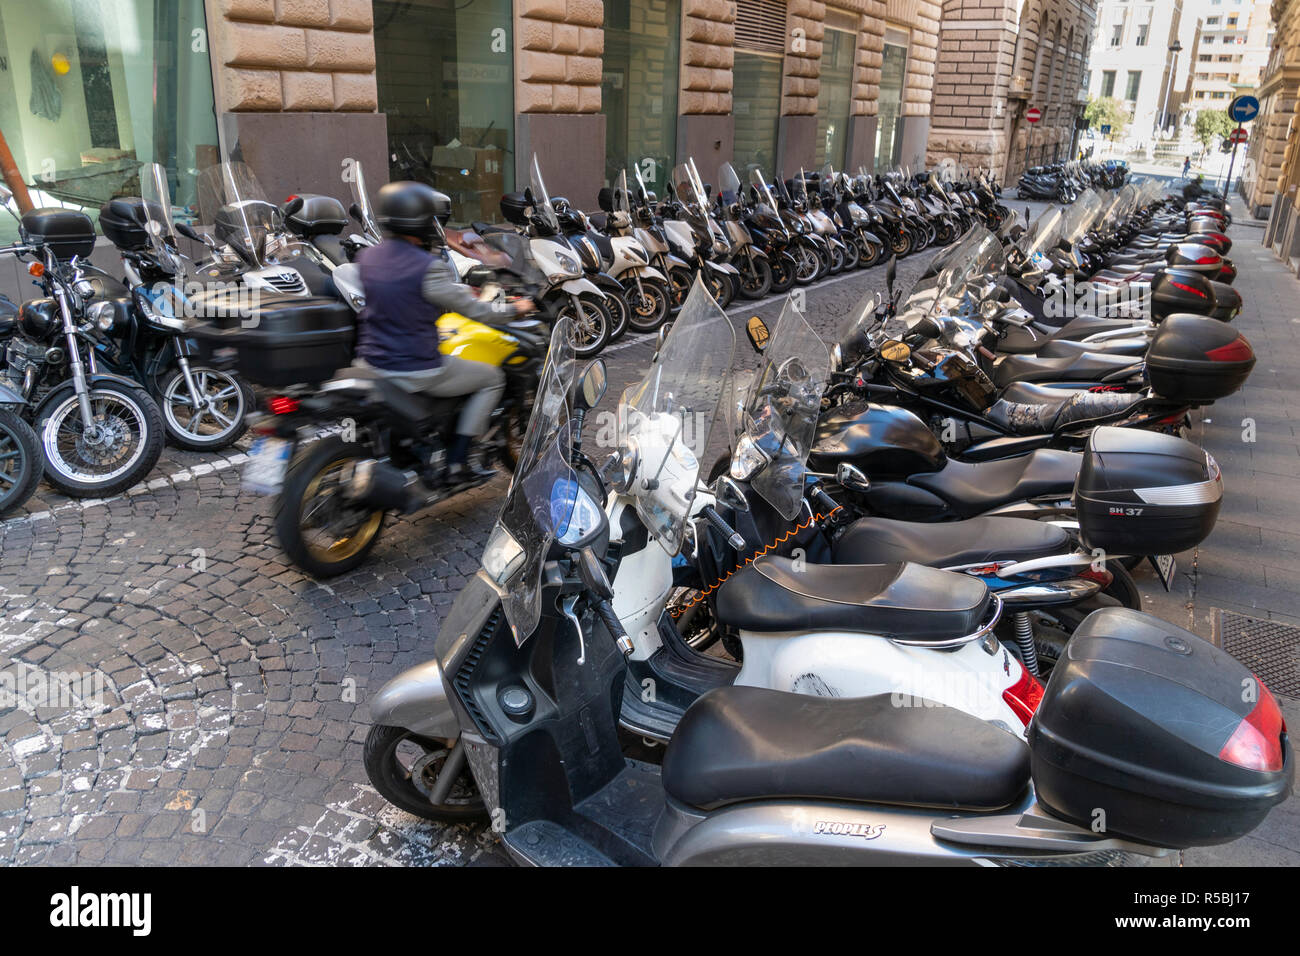 Rows of scooters and motorbikes, the most popular transport in Naples, parked in a street in the city centre,  Naples, Italy. - Stock Image